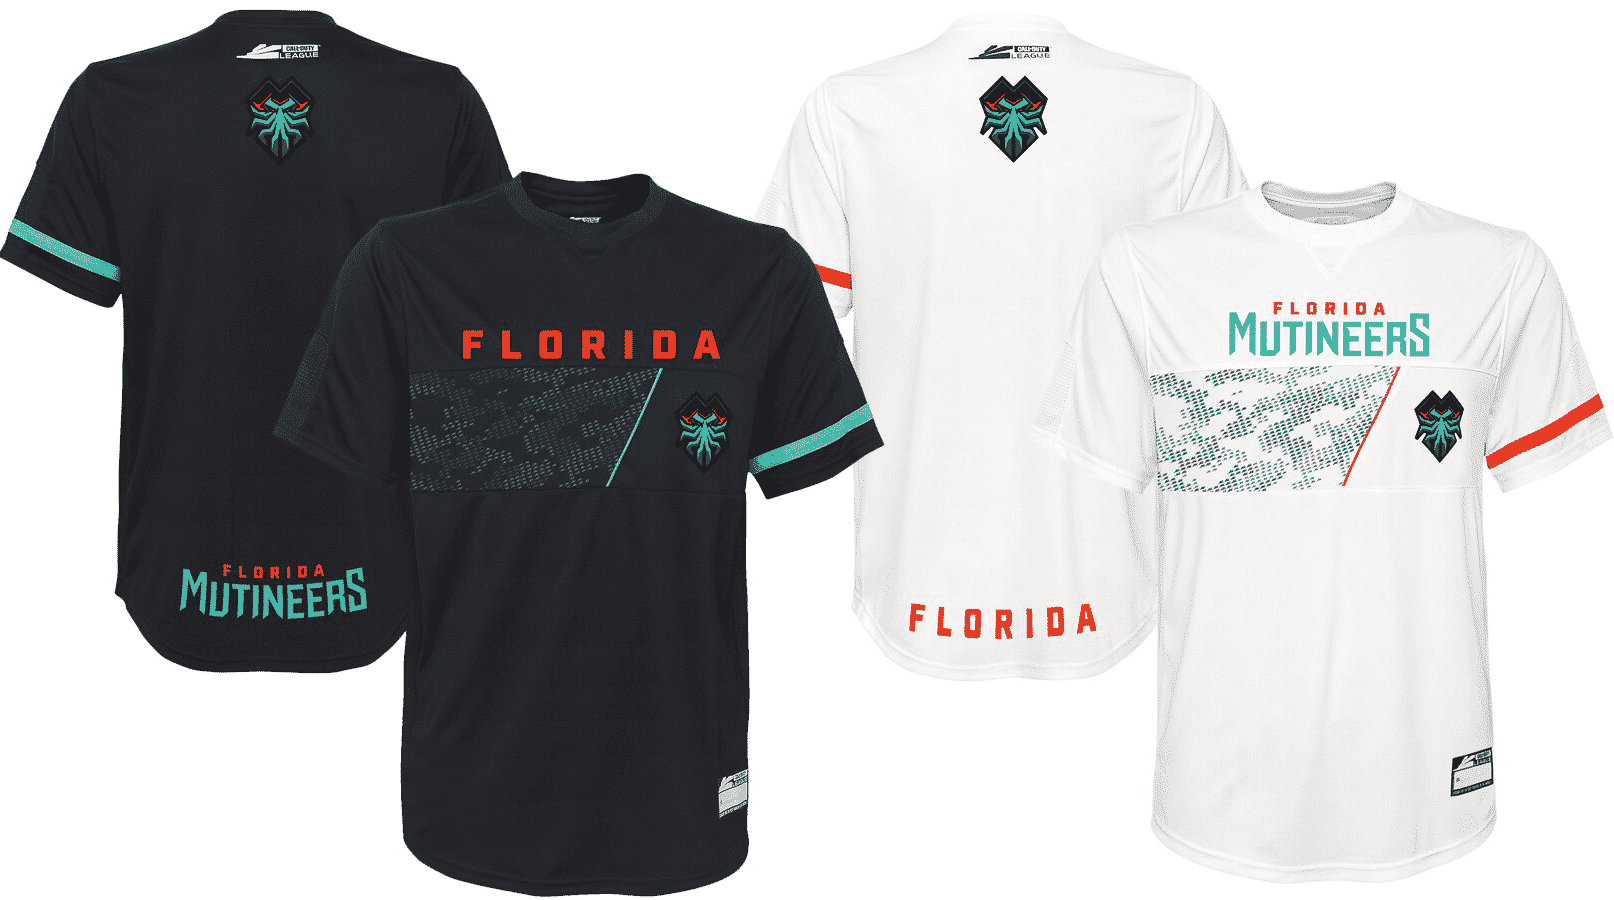 Florida Mutineers Jersey Call of Duty League 2020 Esports